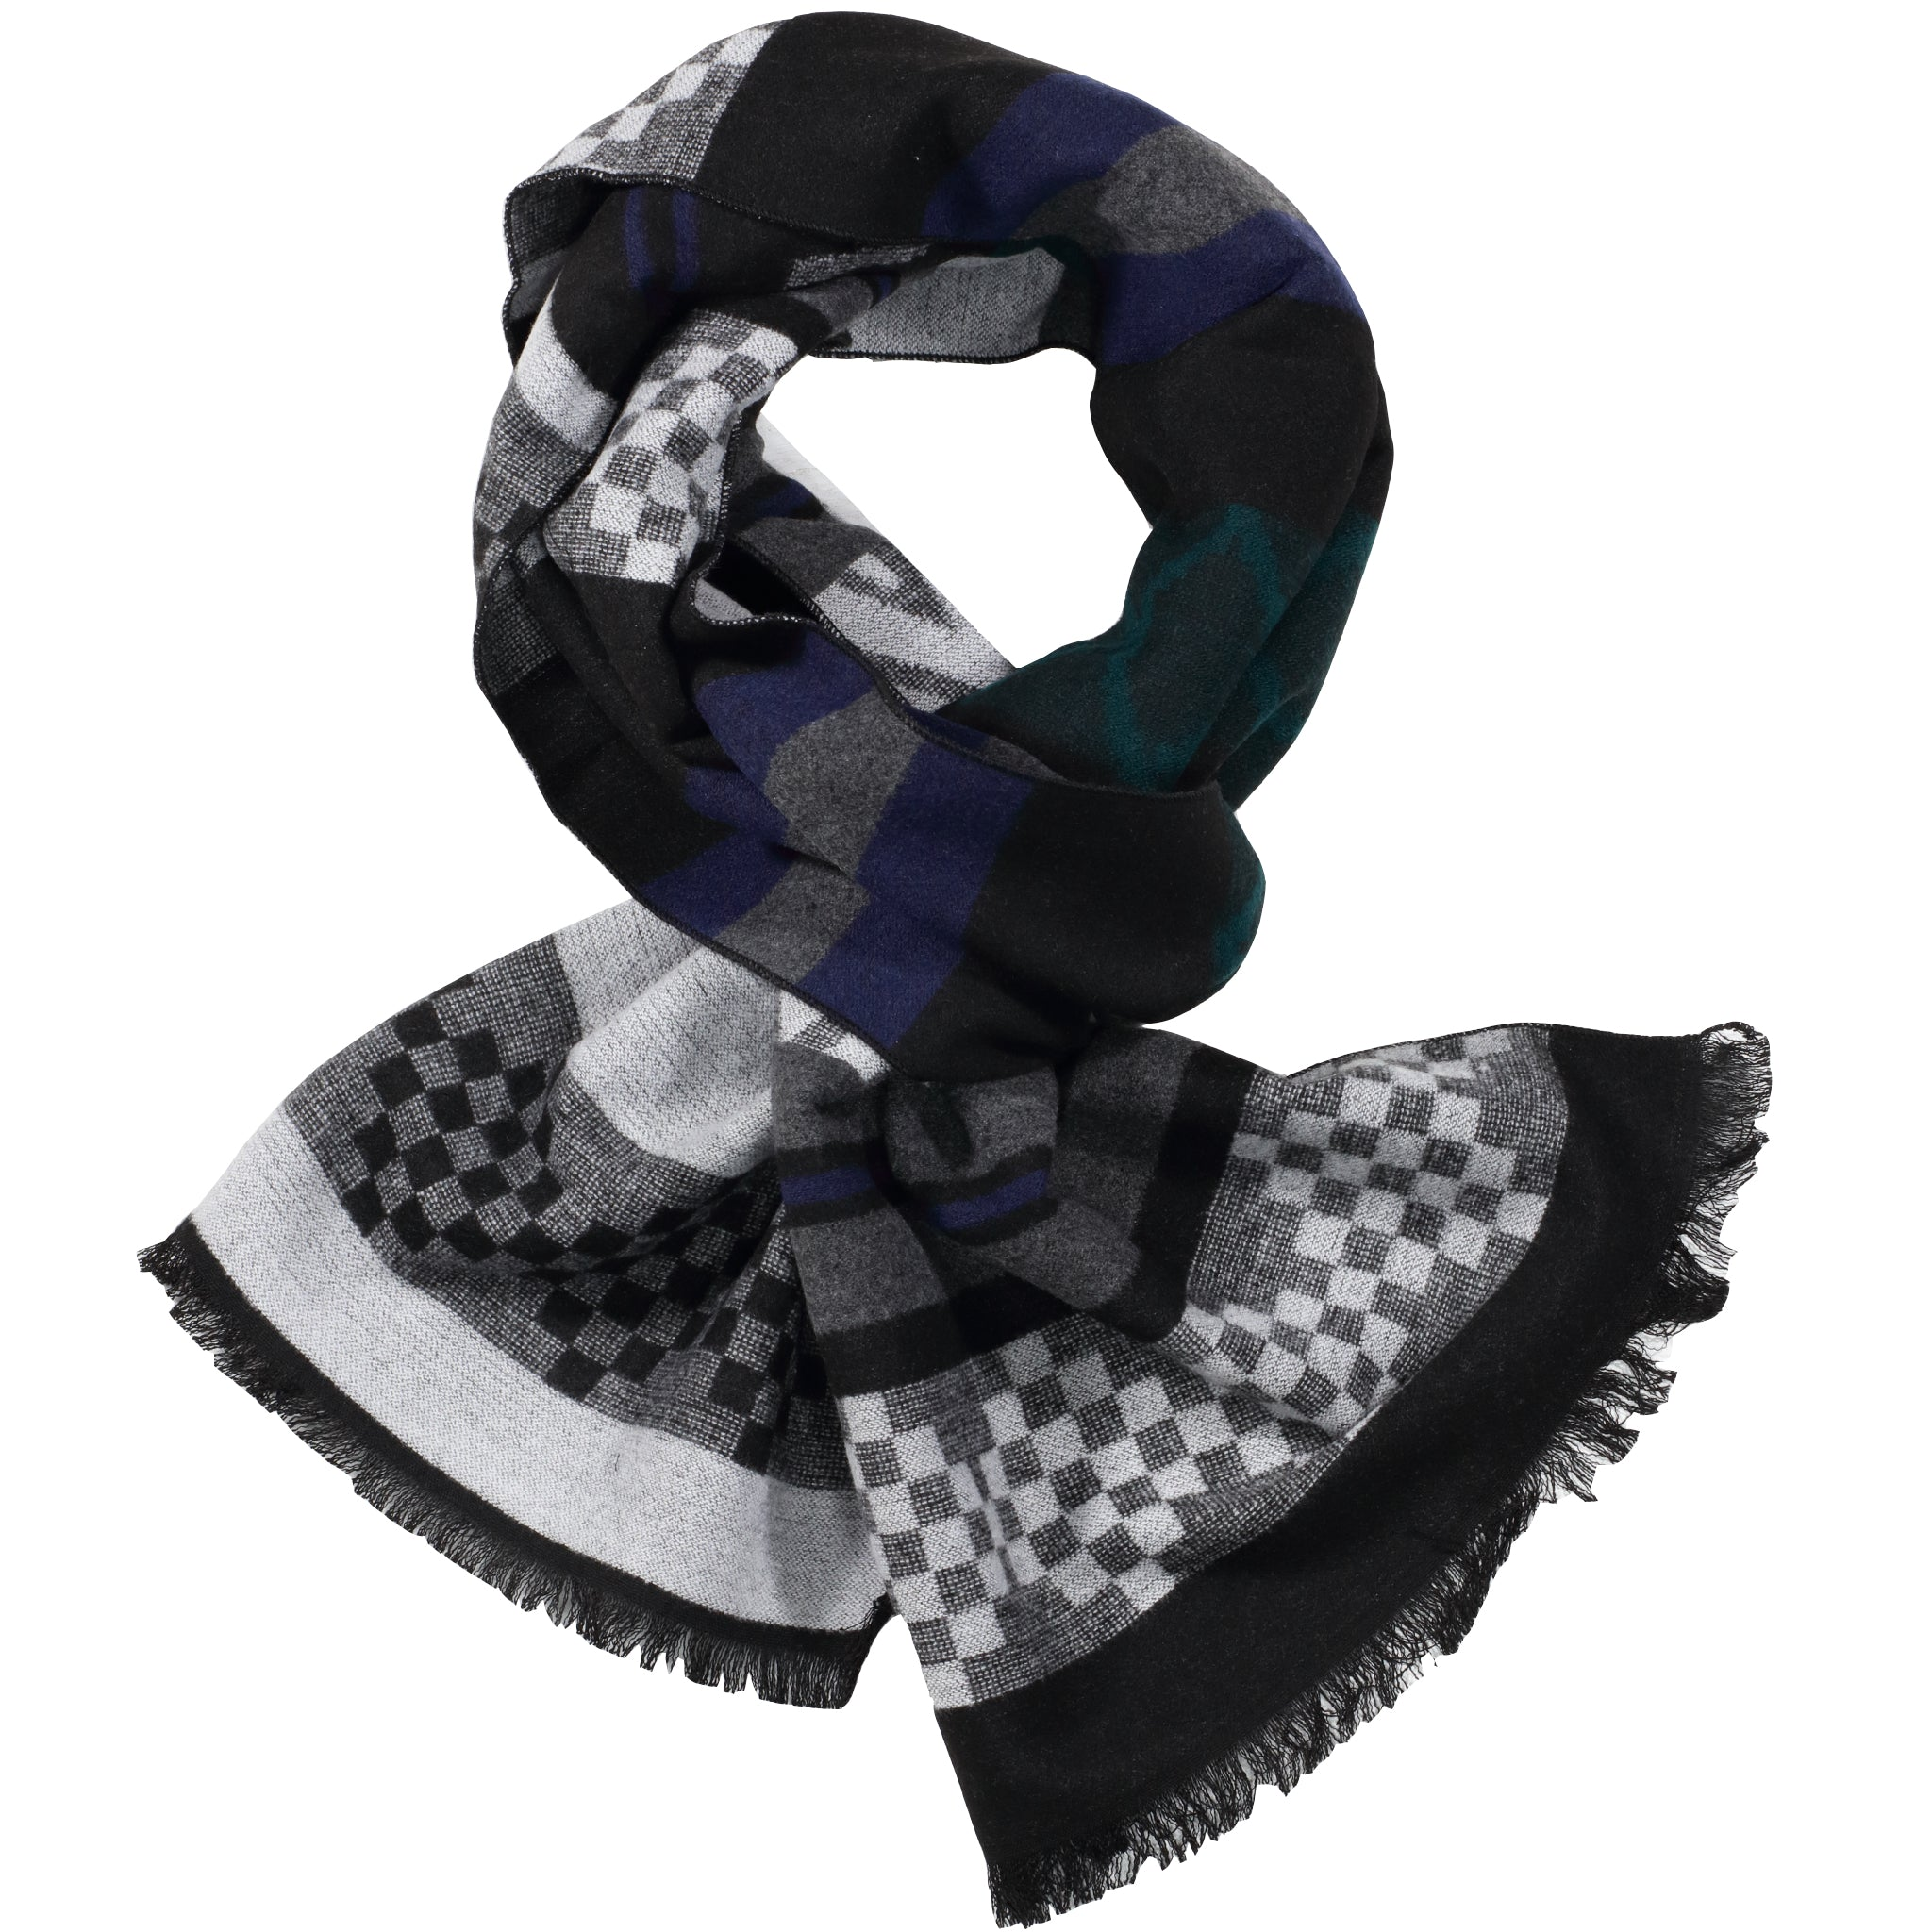 Black, Grey, & Teal Scarf